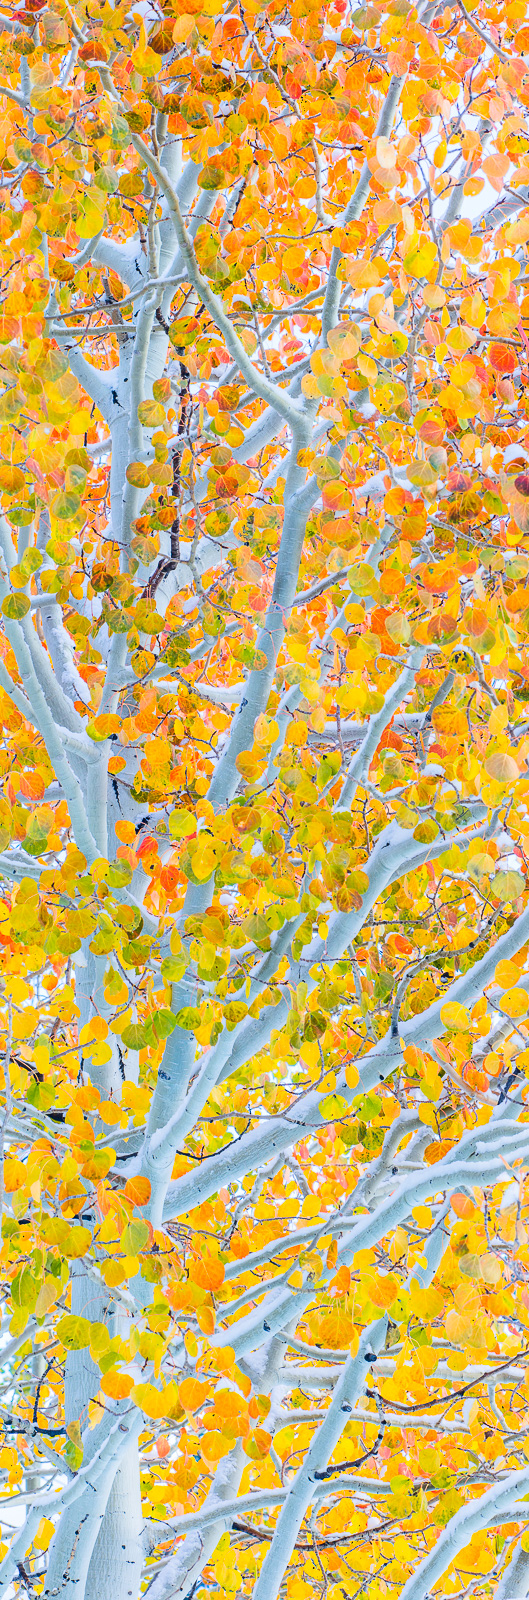 Fire-n-Ice,Aspen,Fall,Orange,Trees,Yellow,autumn,panoramic,snow,vertical, photo